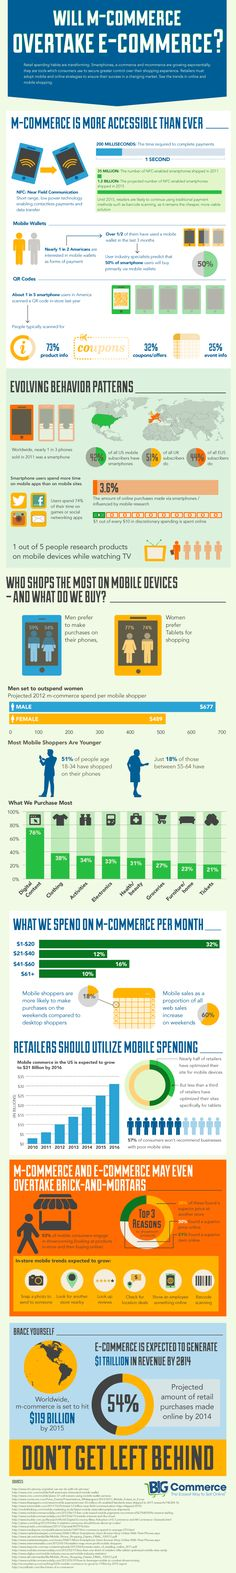 The rise and rise of #mCommerce #eCommerce #SocialMedia #SocialMediaMarketing #SocialMediaCommerce